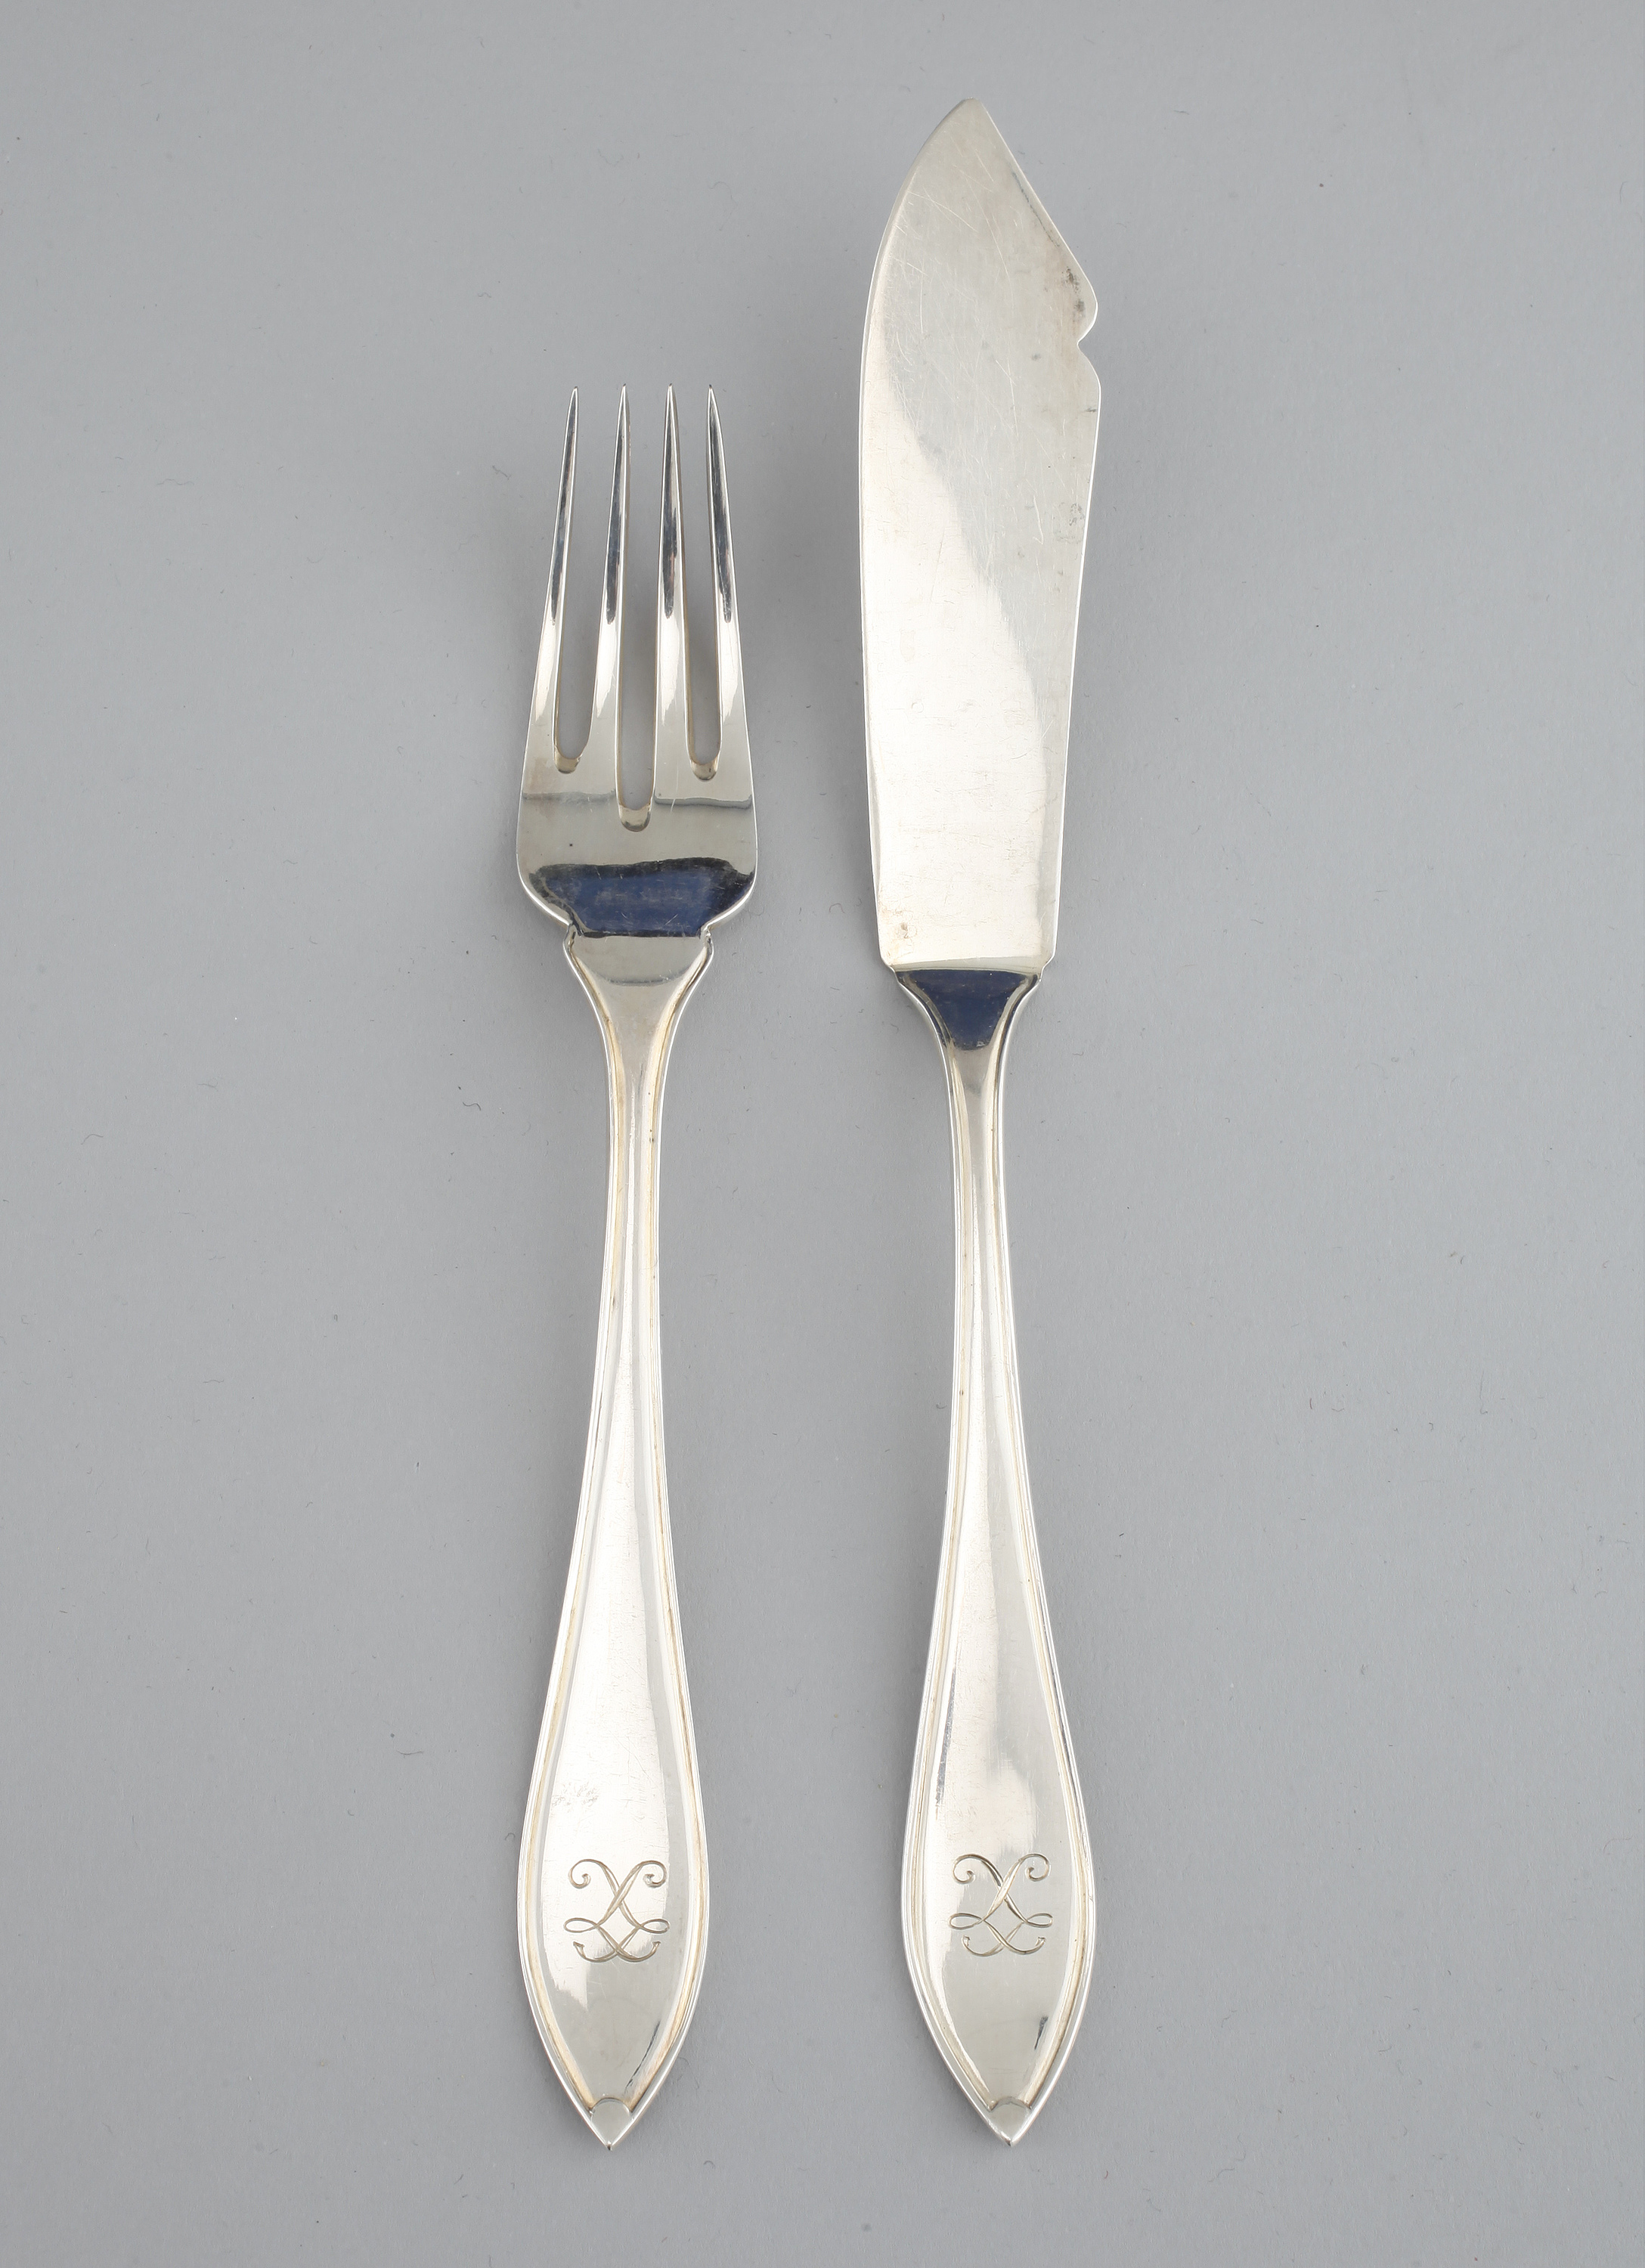 24 pieces of silverware, MAB, Stockholm, 1930  Weight 911 g